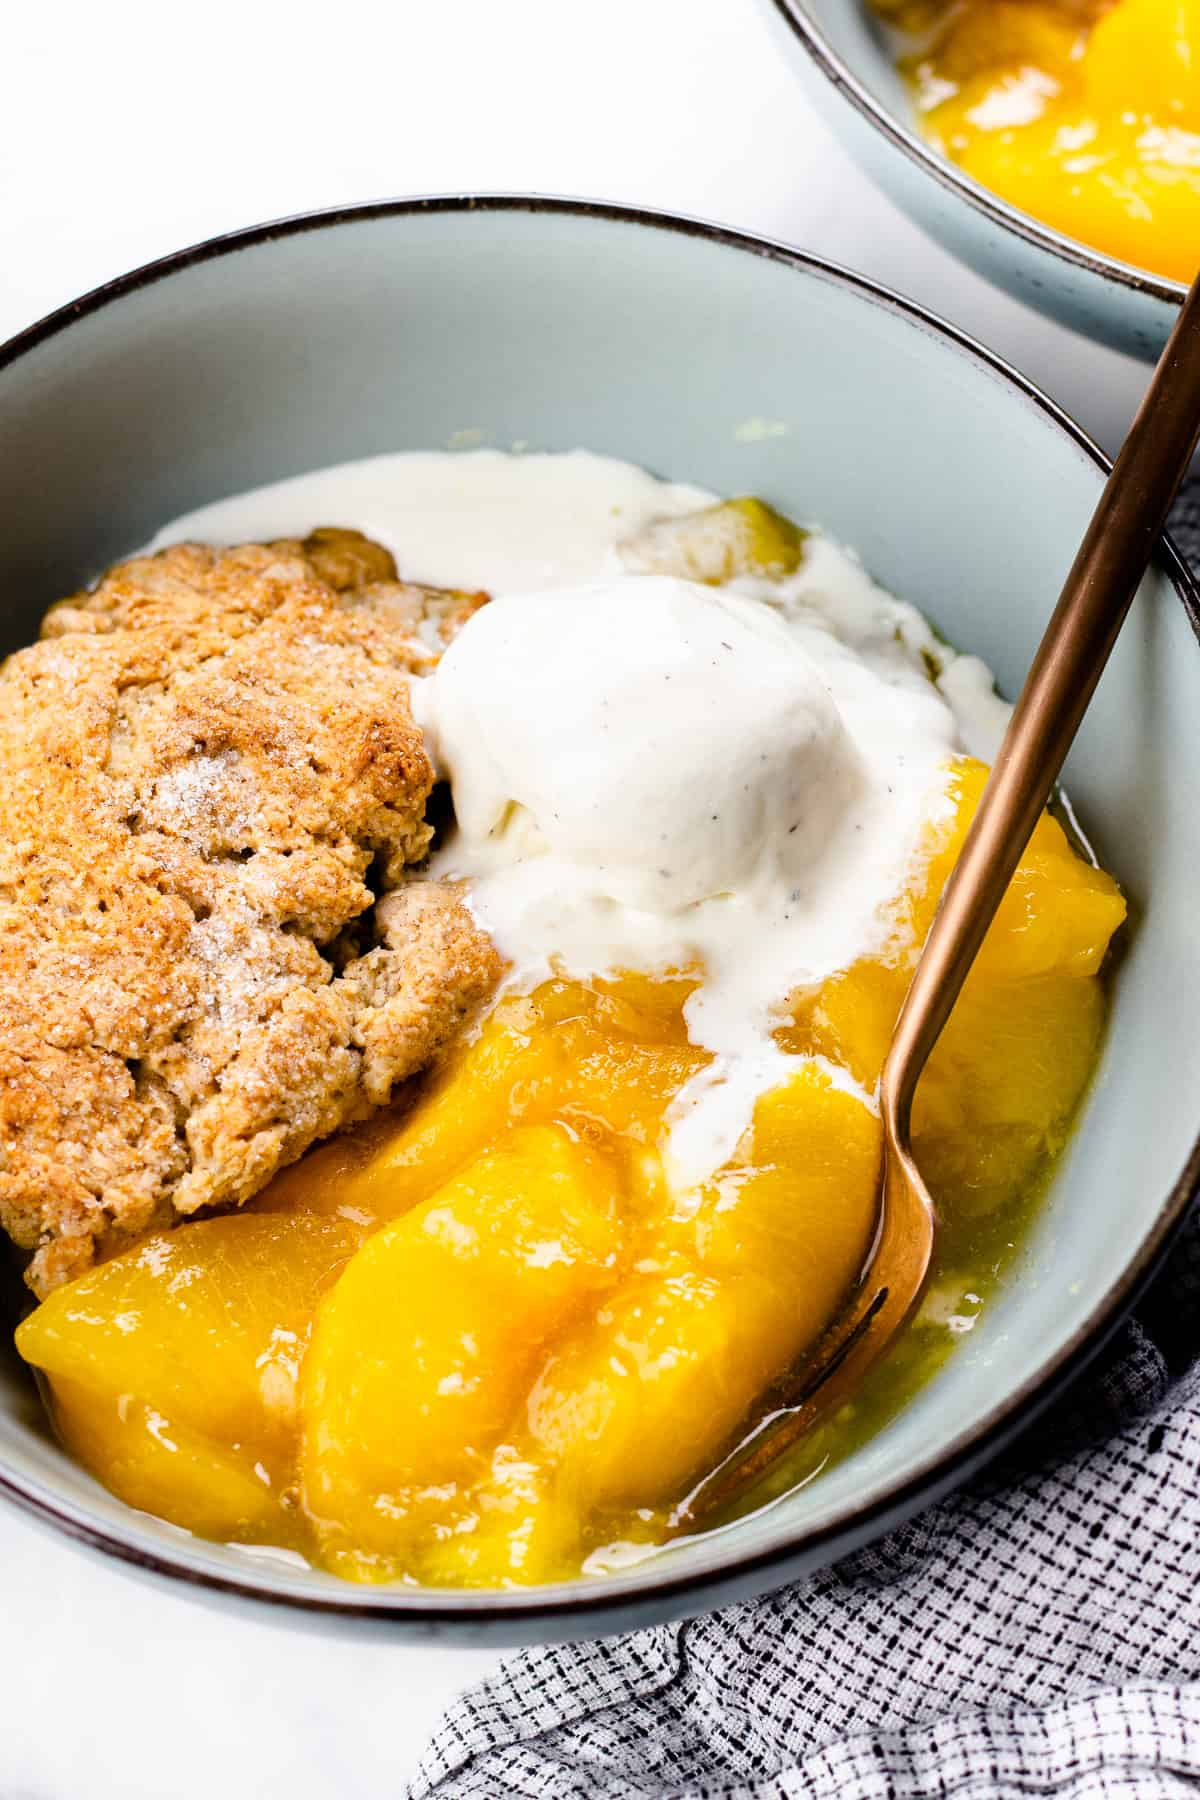 Peach Cobbler with a scoop of ice cream in a blue bowl.